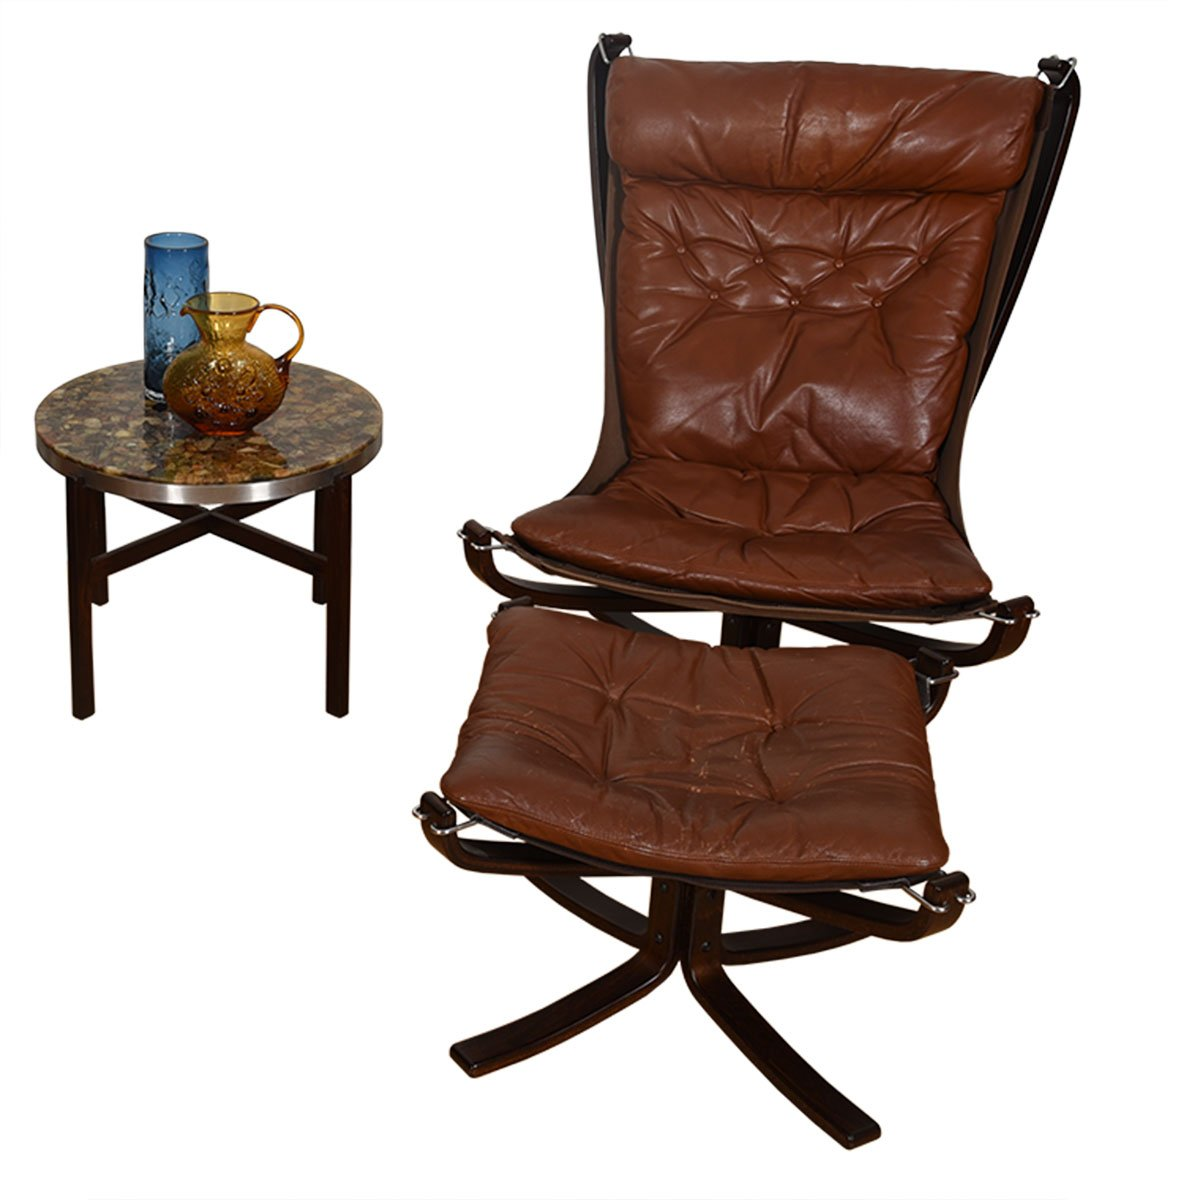 Norwegian Rosewood Leather 'Falcon' Lounge Chair + Ottoman.